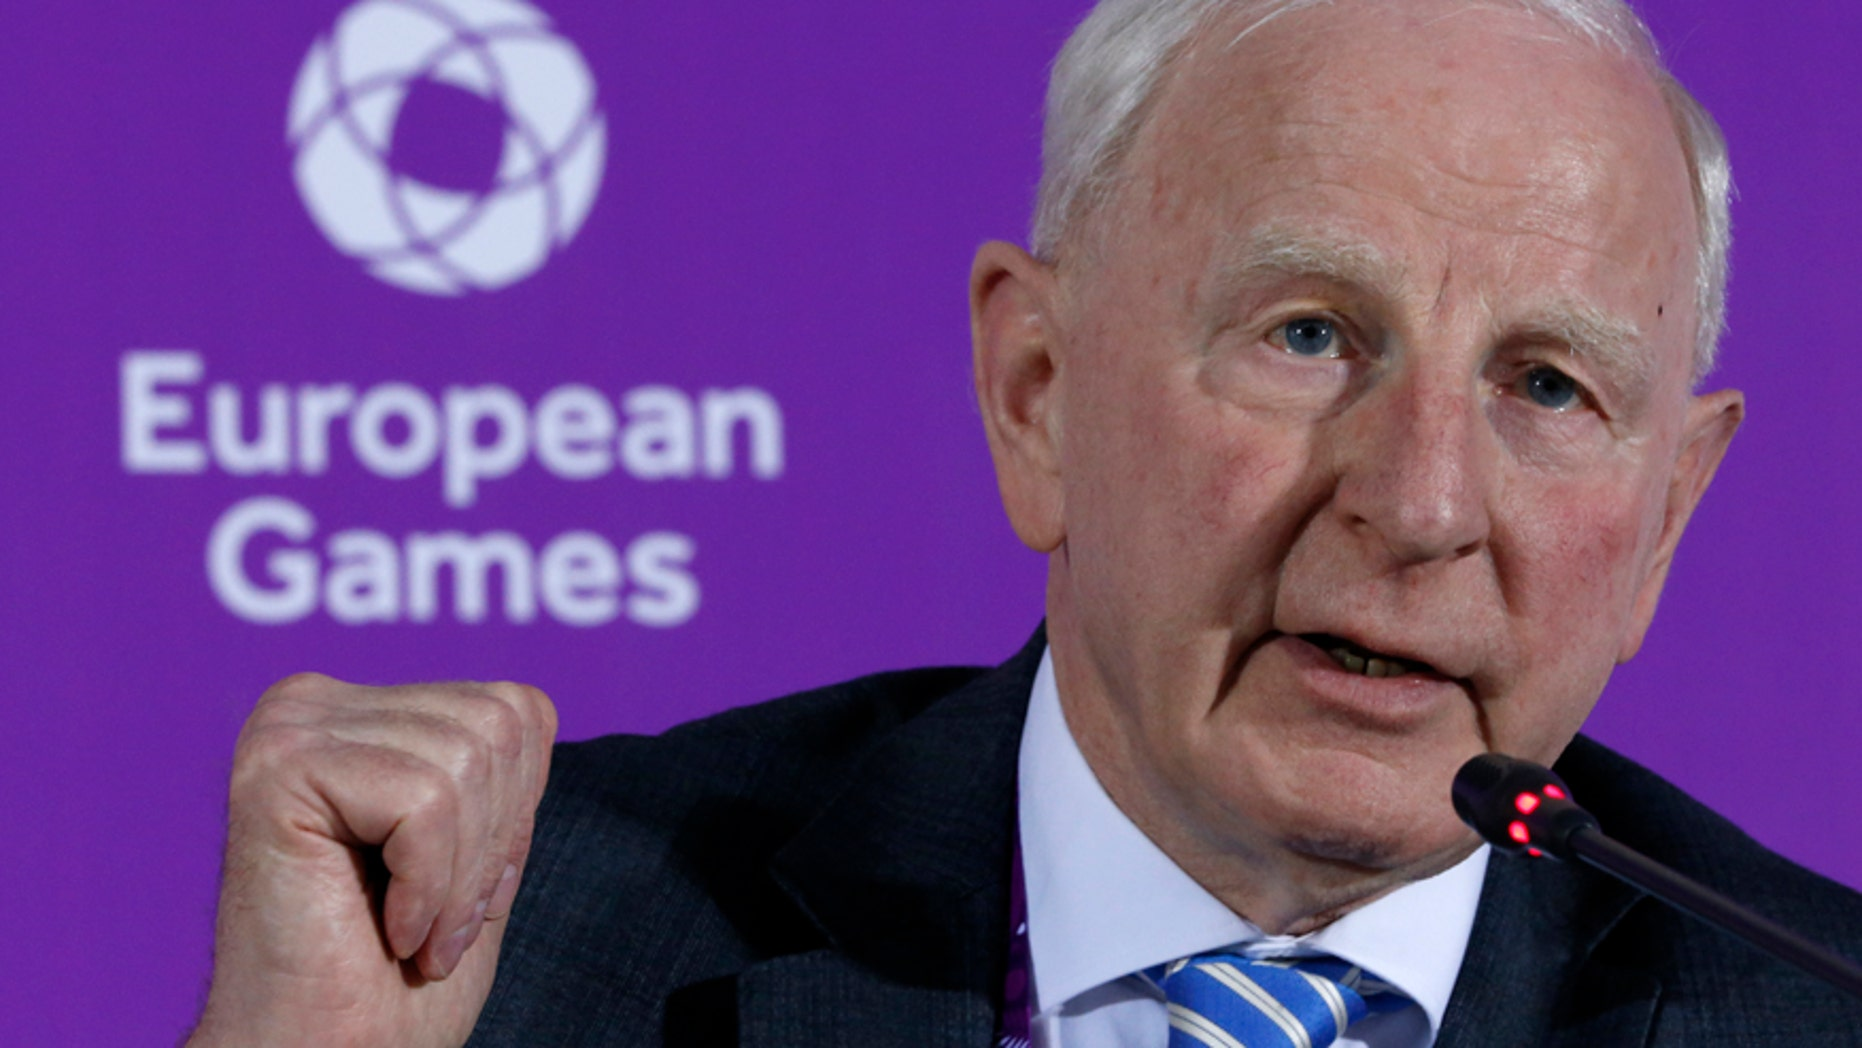 June 11, 2015: Patrick Hickey, the head of the European Olympic Committee speaks during a news conference on the eve of the opening of the 2015 European Games in Baku, Azerbaijan. Rio de Janeiro authorities have issued an arrest warrant for Hickey accused of scalping tickets for the Summer Games.